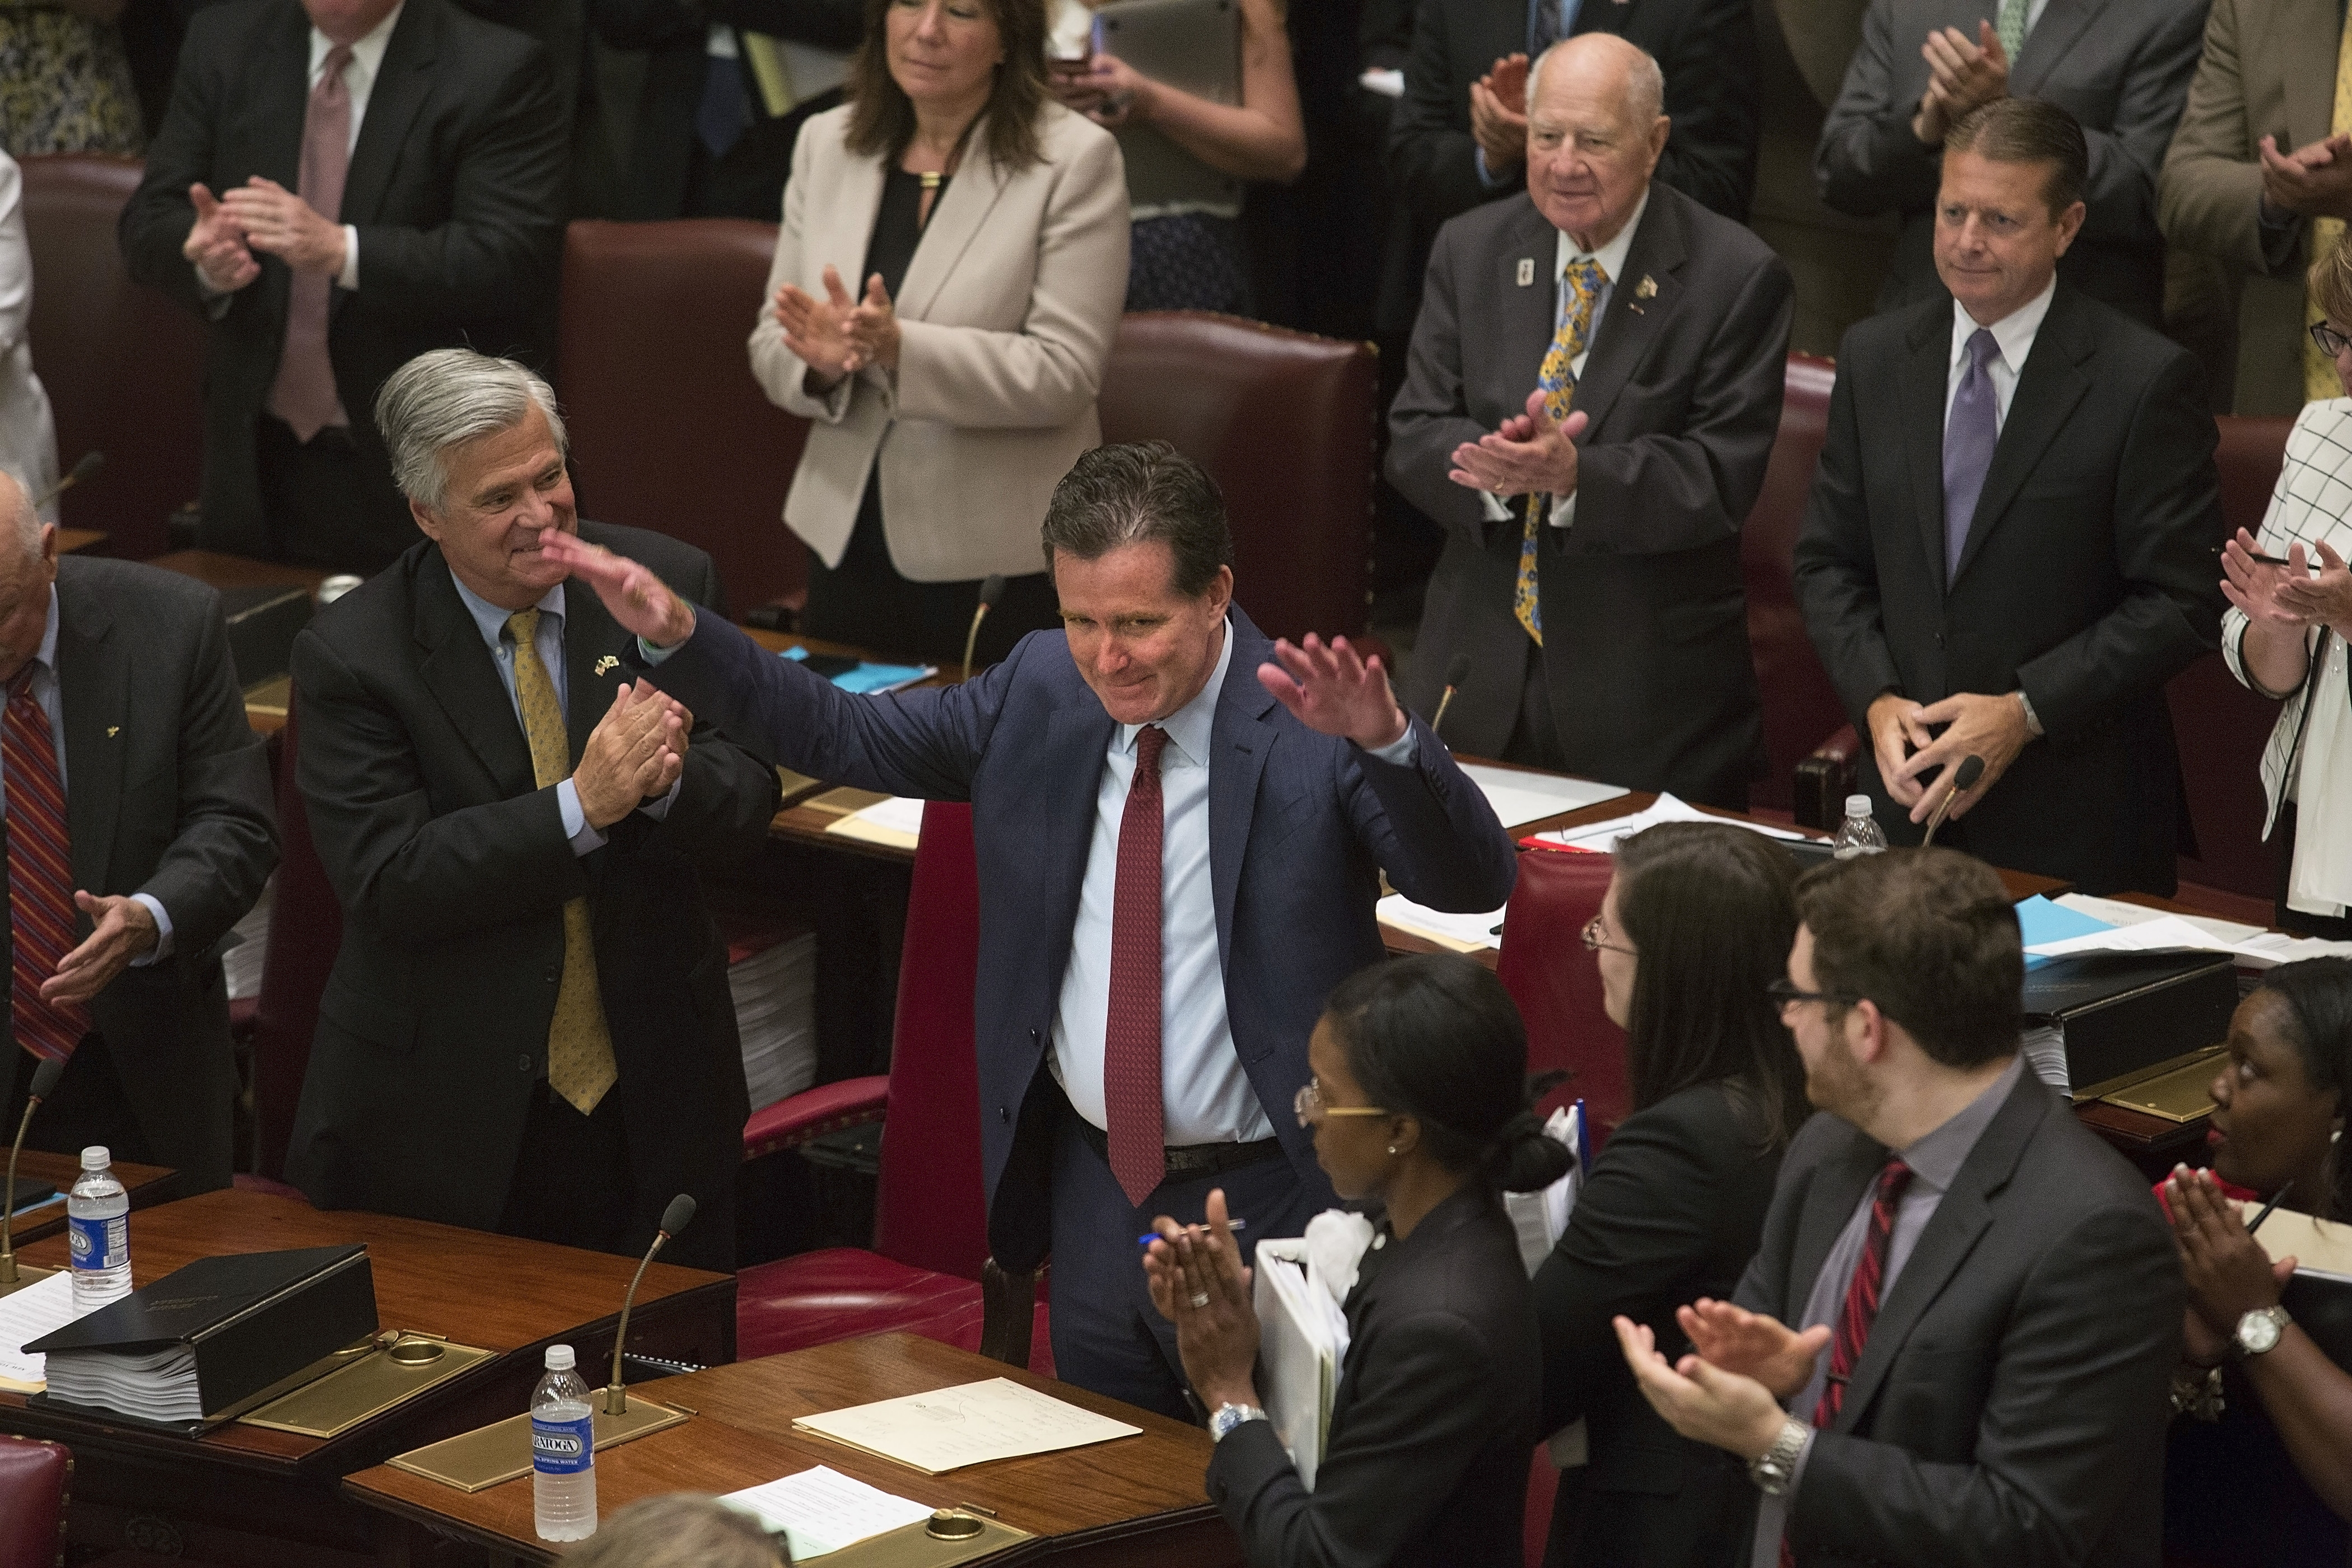 New Majority Leader Republican Sen. John Flanagan acknowledges congratulations from other senators -- including from former Majority Leader Sen. Dean Skelos, left -- on his new role following a formal vote at the Capitol in Albany, N.Y., May 11, 2015. Skelos stepped down from his leadership post after his arrest last week on federal corruption charges. (Nathaniel Brooks/The New York Times)